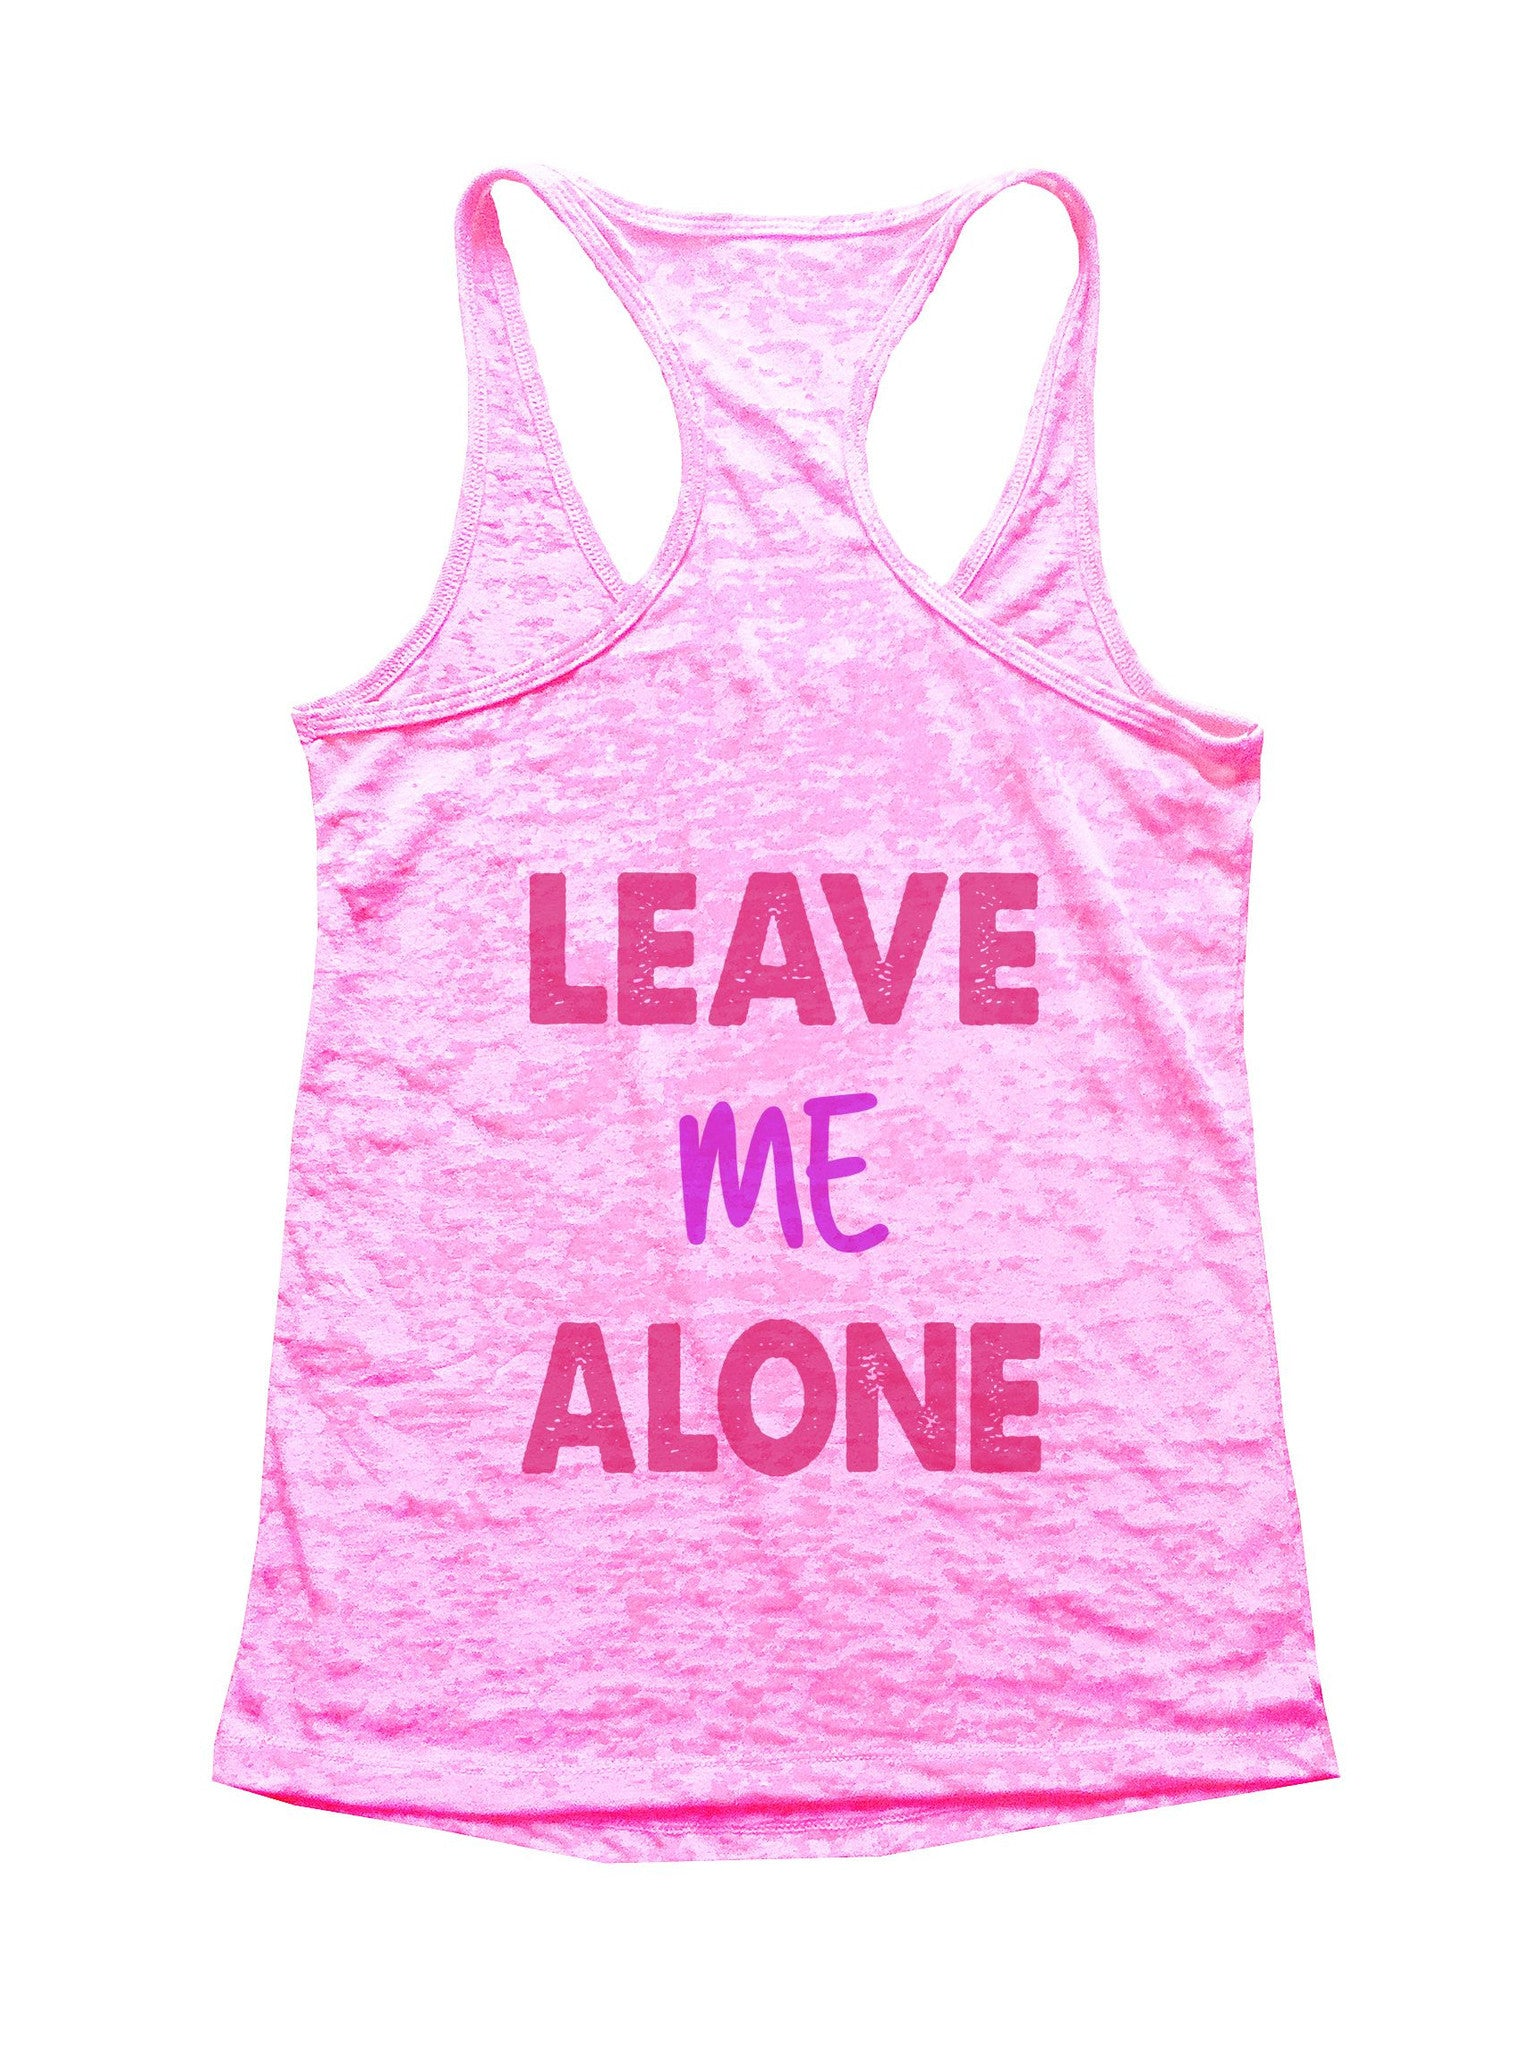 Leave Me Alone Burnout Tank Top By BurnoutTankTops.com - B24 - Funny Shirts Tank Tops Burnouts and Triblends  - 1